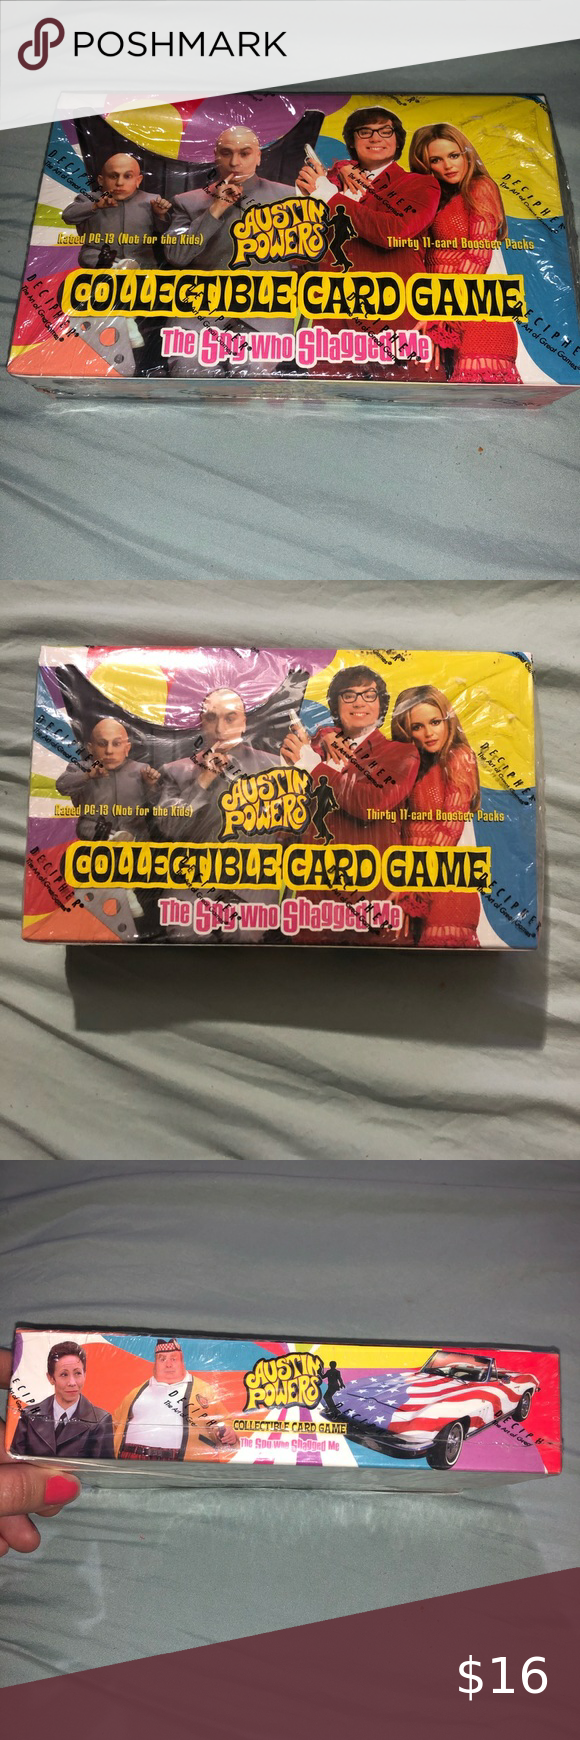 Austin Powers Collectible Card Game Vintage Pack Card Games Collectible Card Games Austin Powers